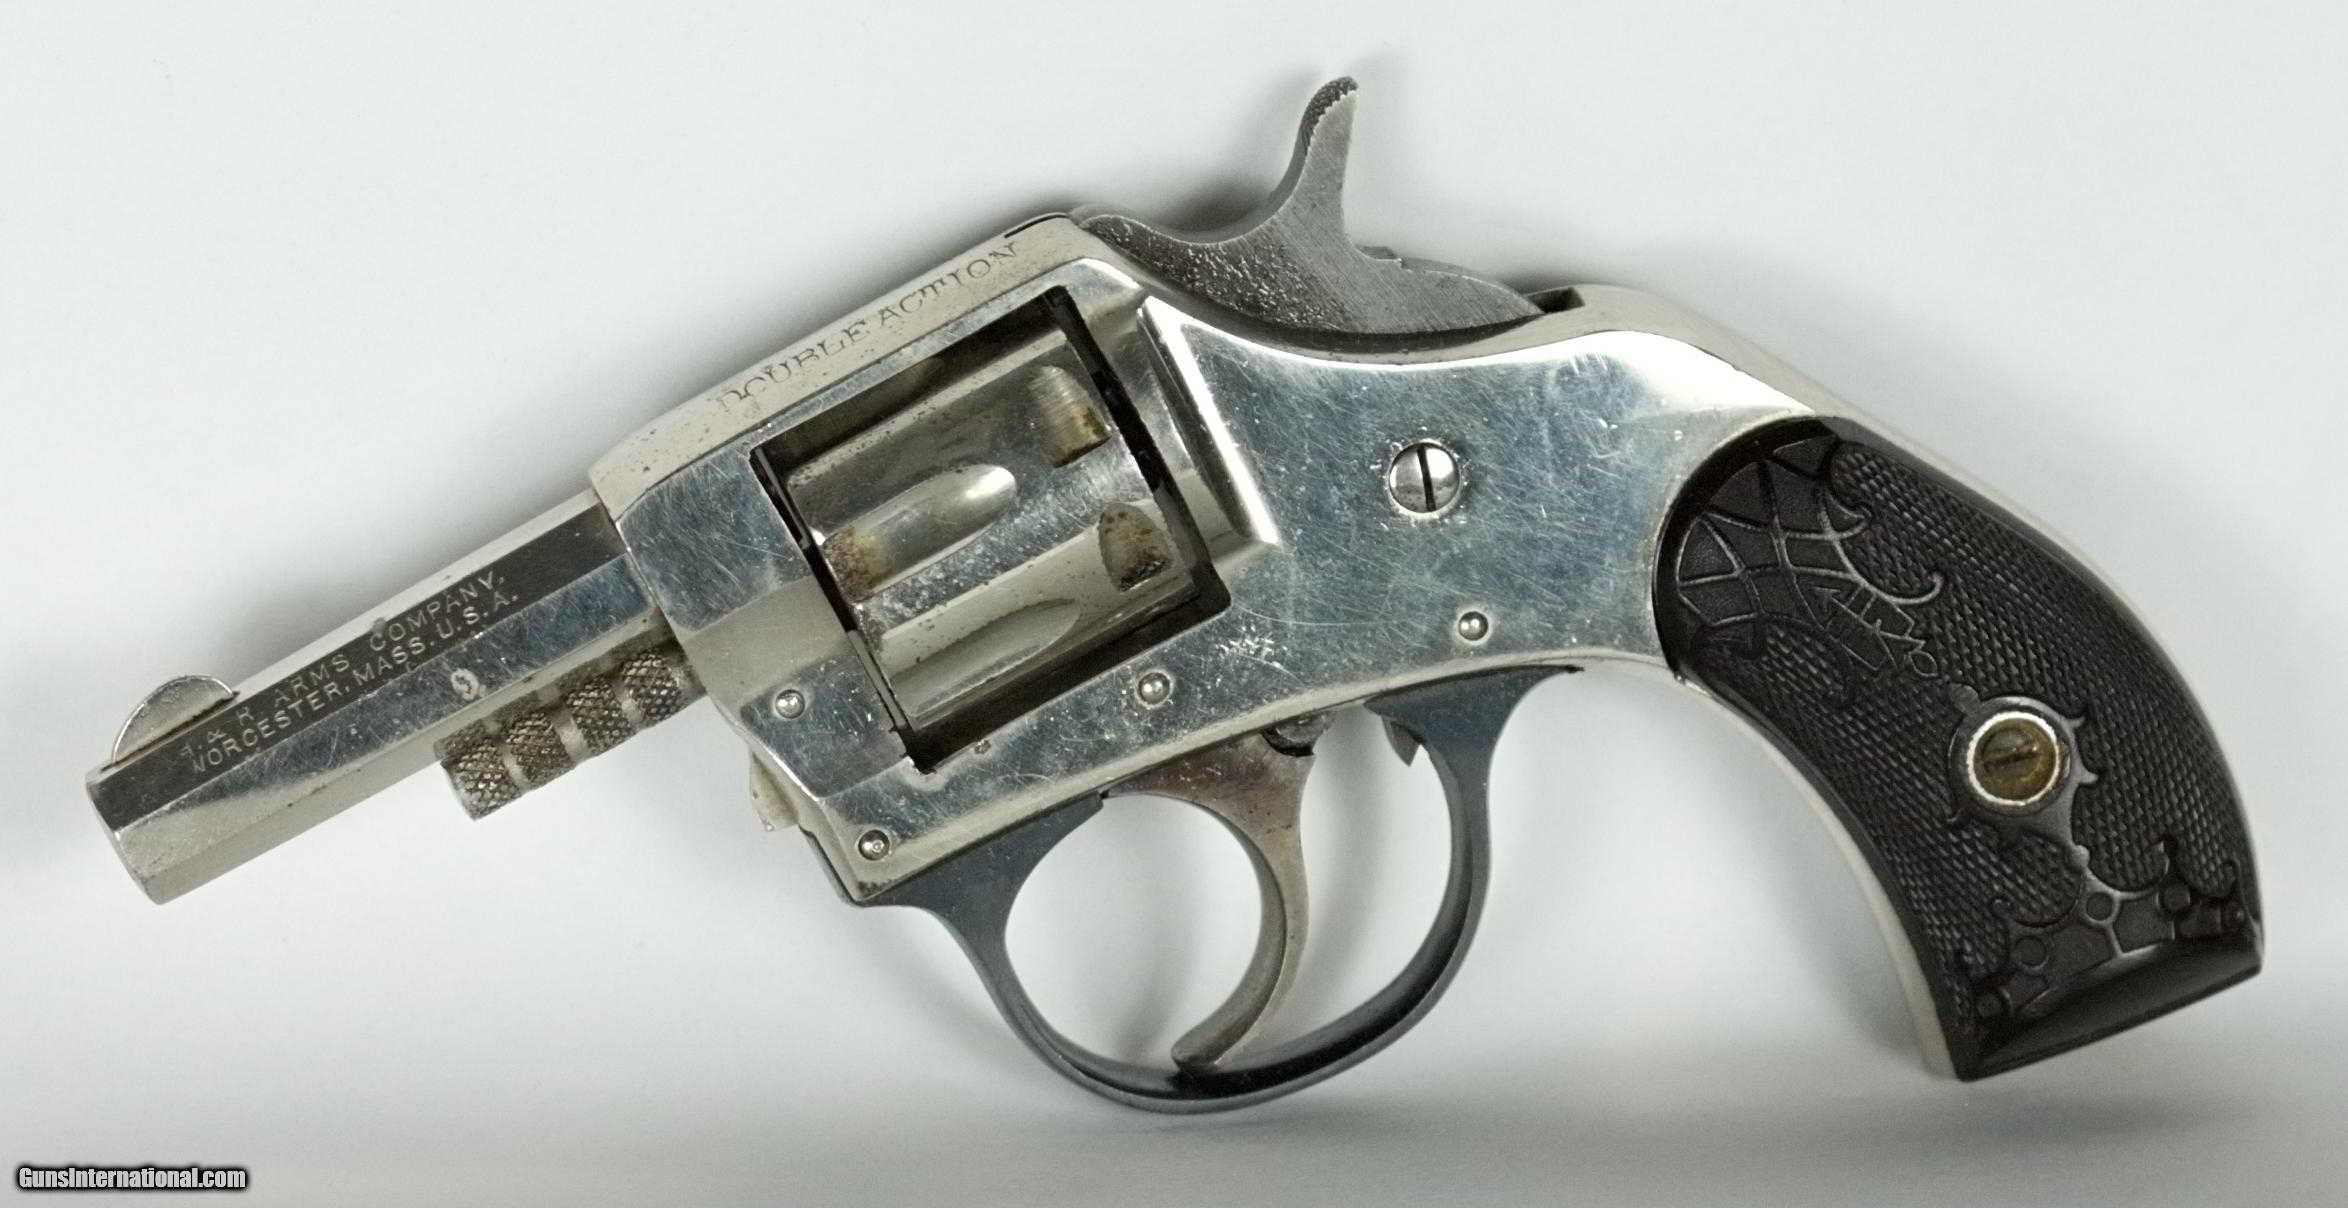 harrington and richardson revolver serial number lookup